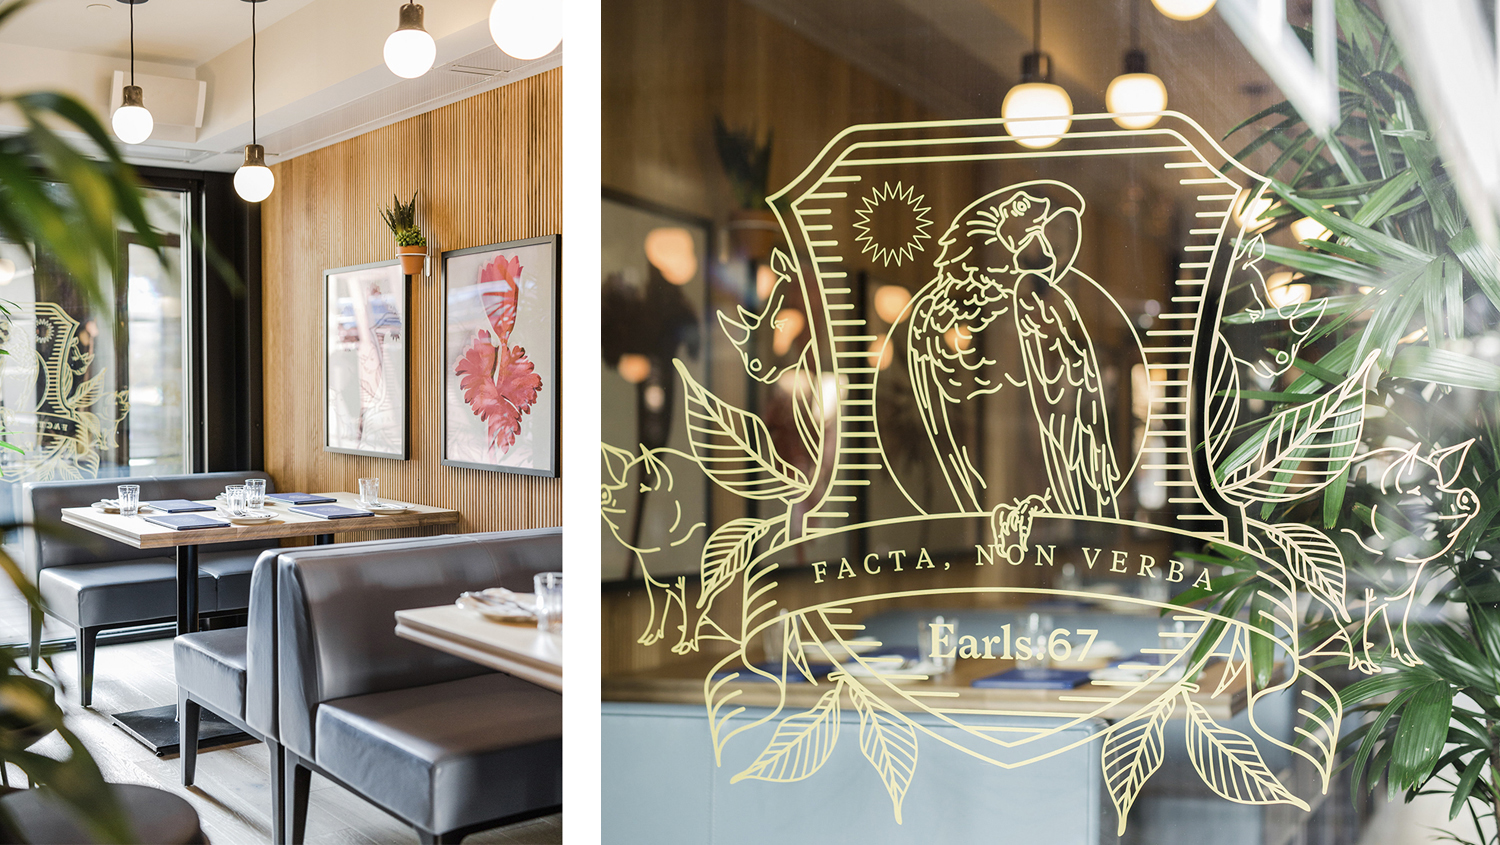 Brand identity and interior graphics by Glasfurd & Walker for US and Canadian restaurant chain prototype Earls.67